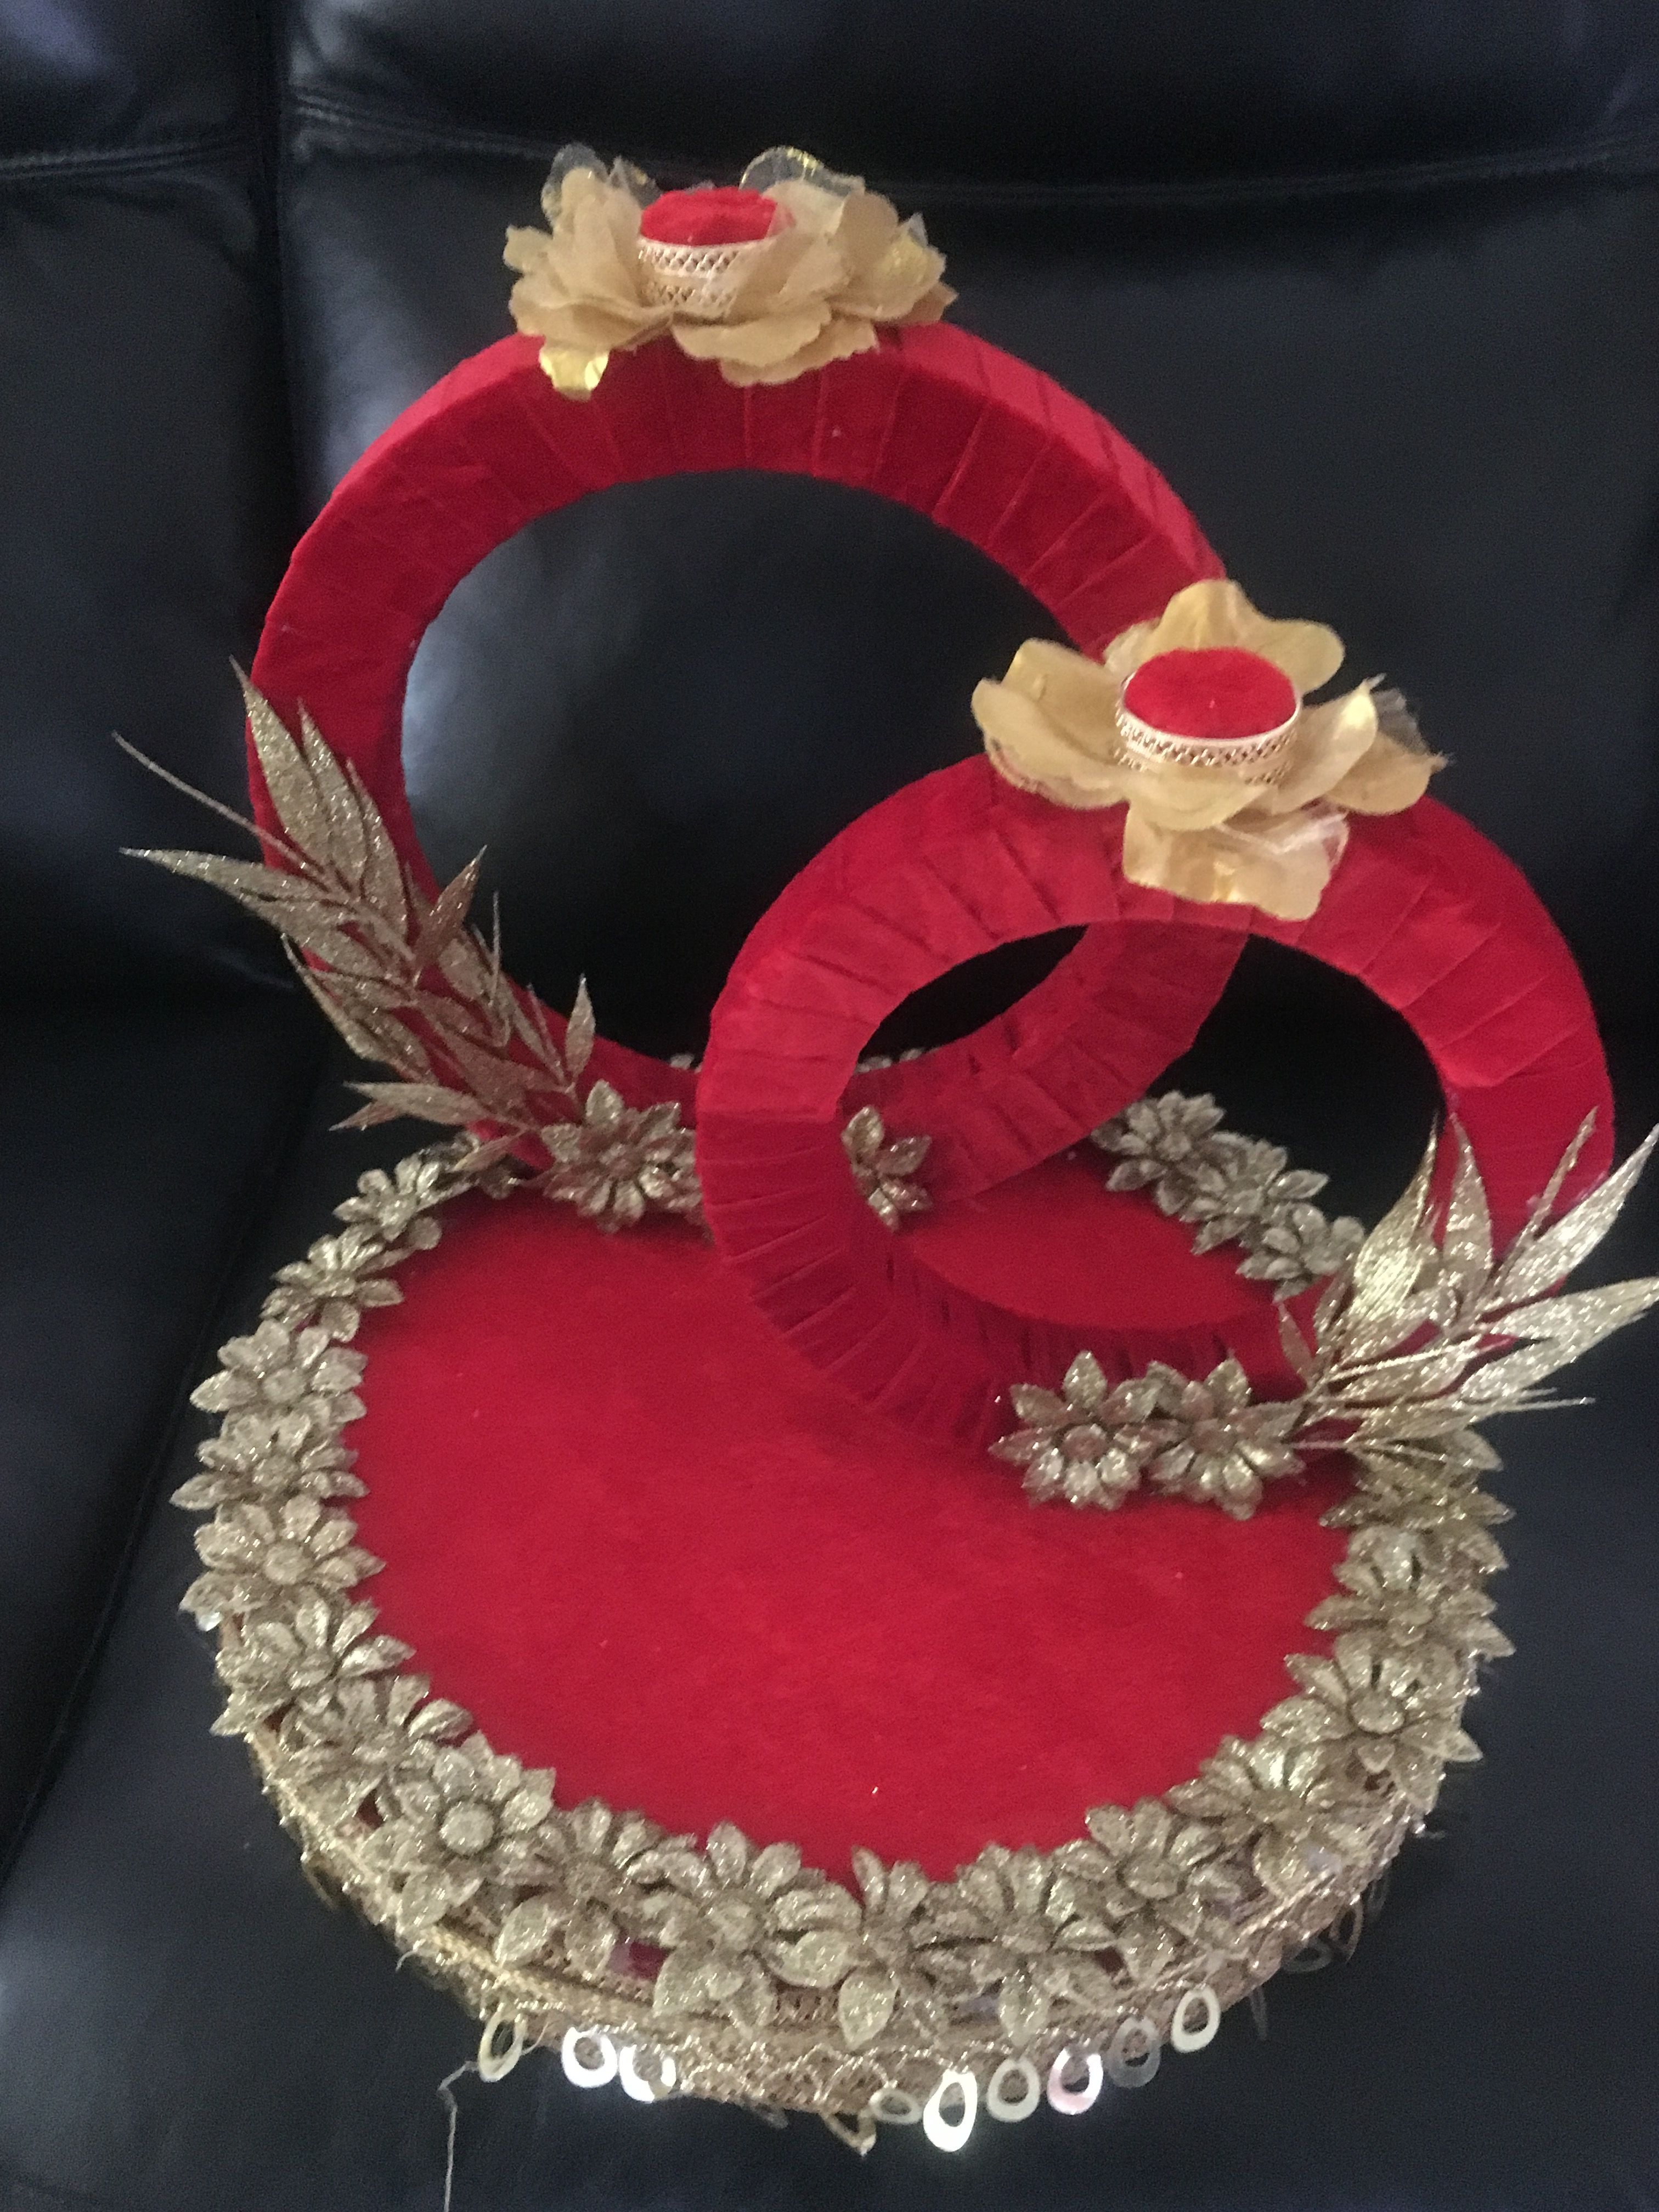 Trousseau Wedding gift pack, Engagement decorations